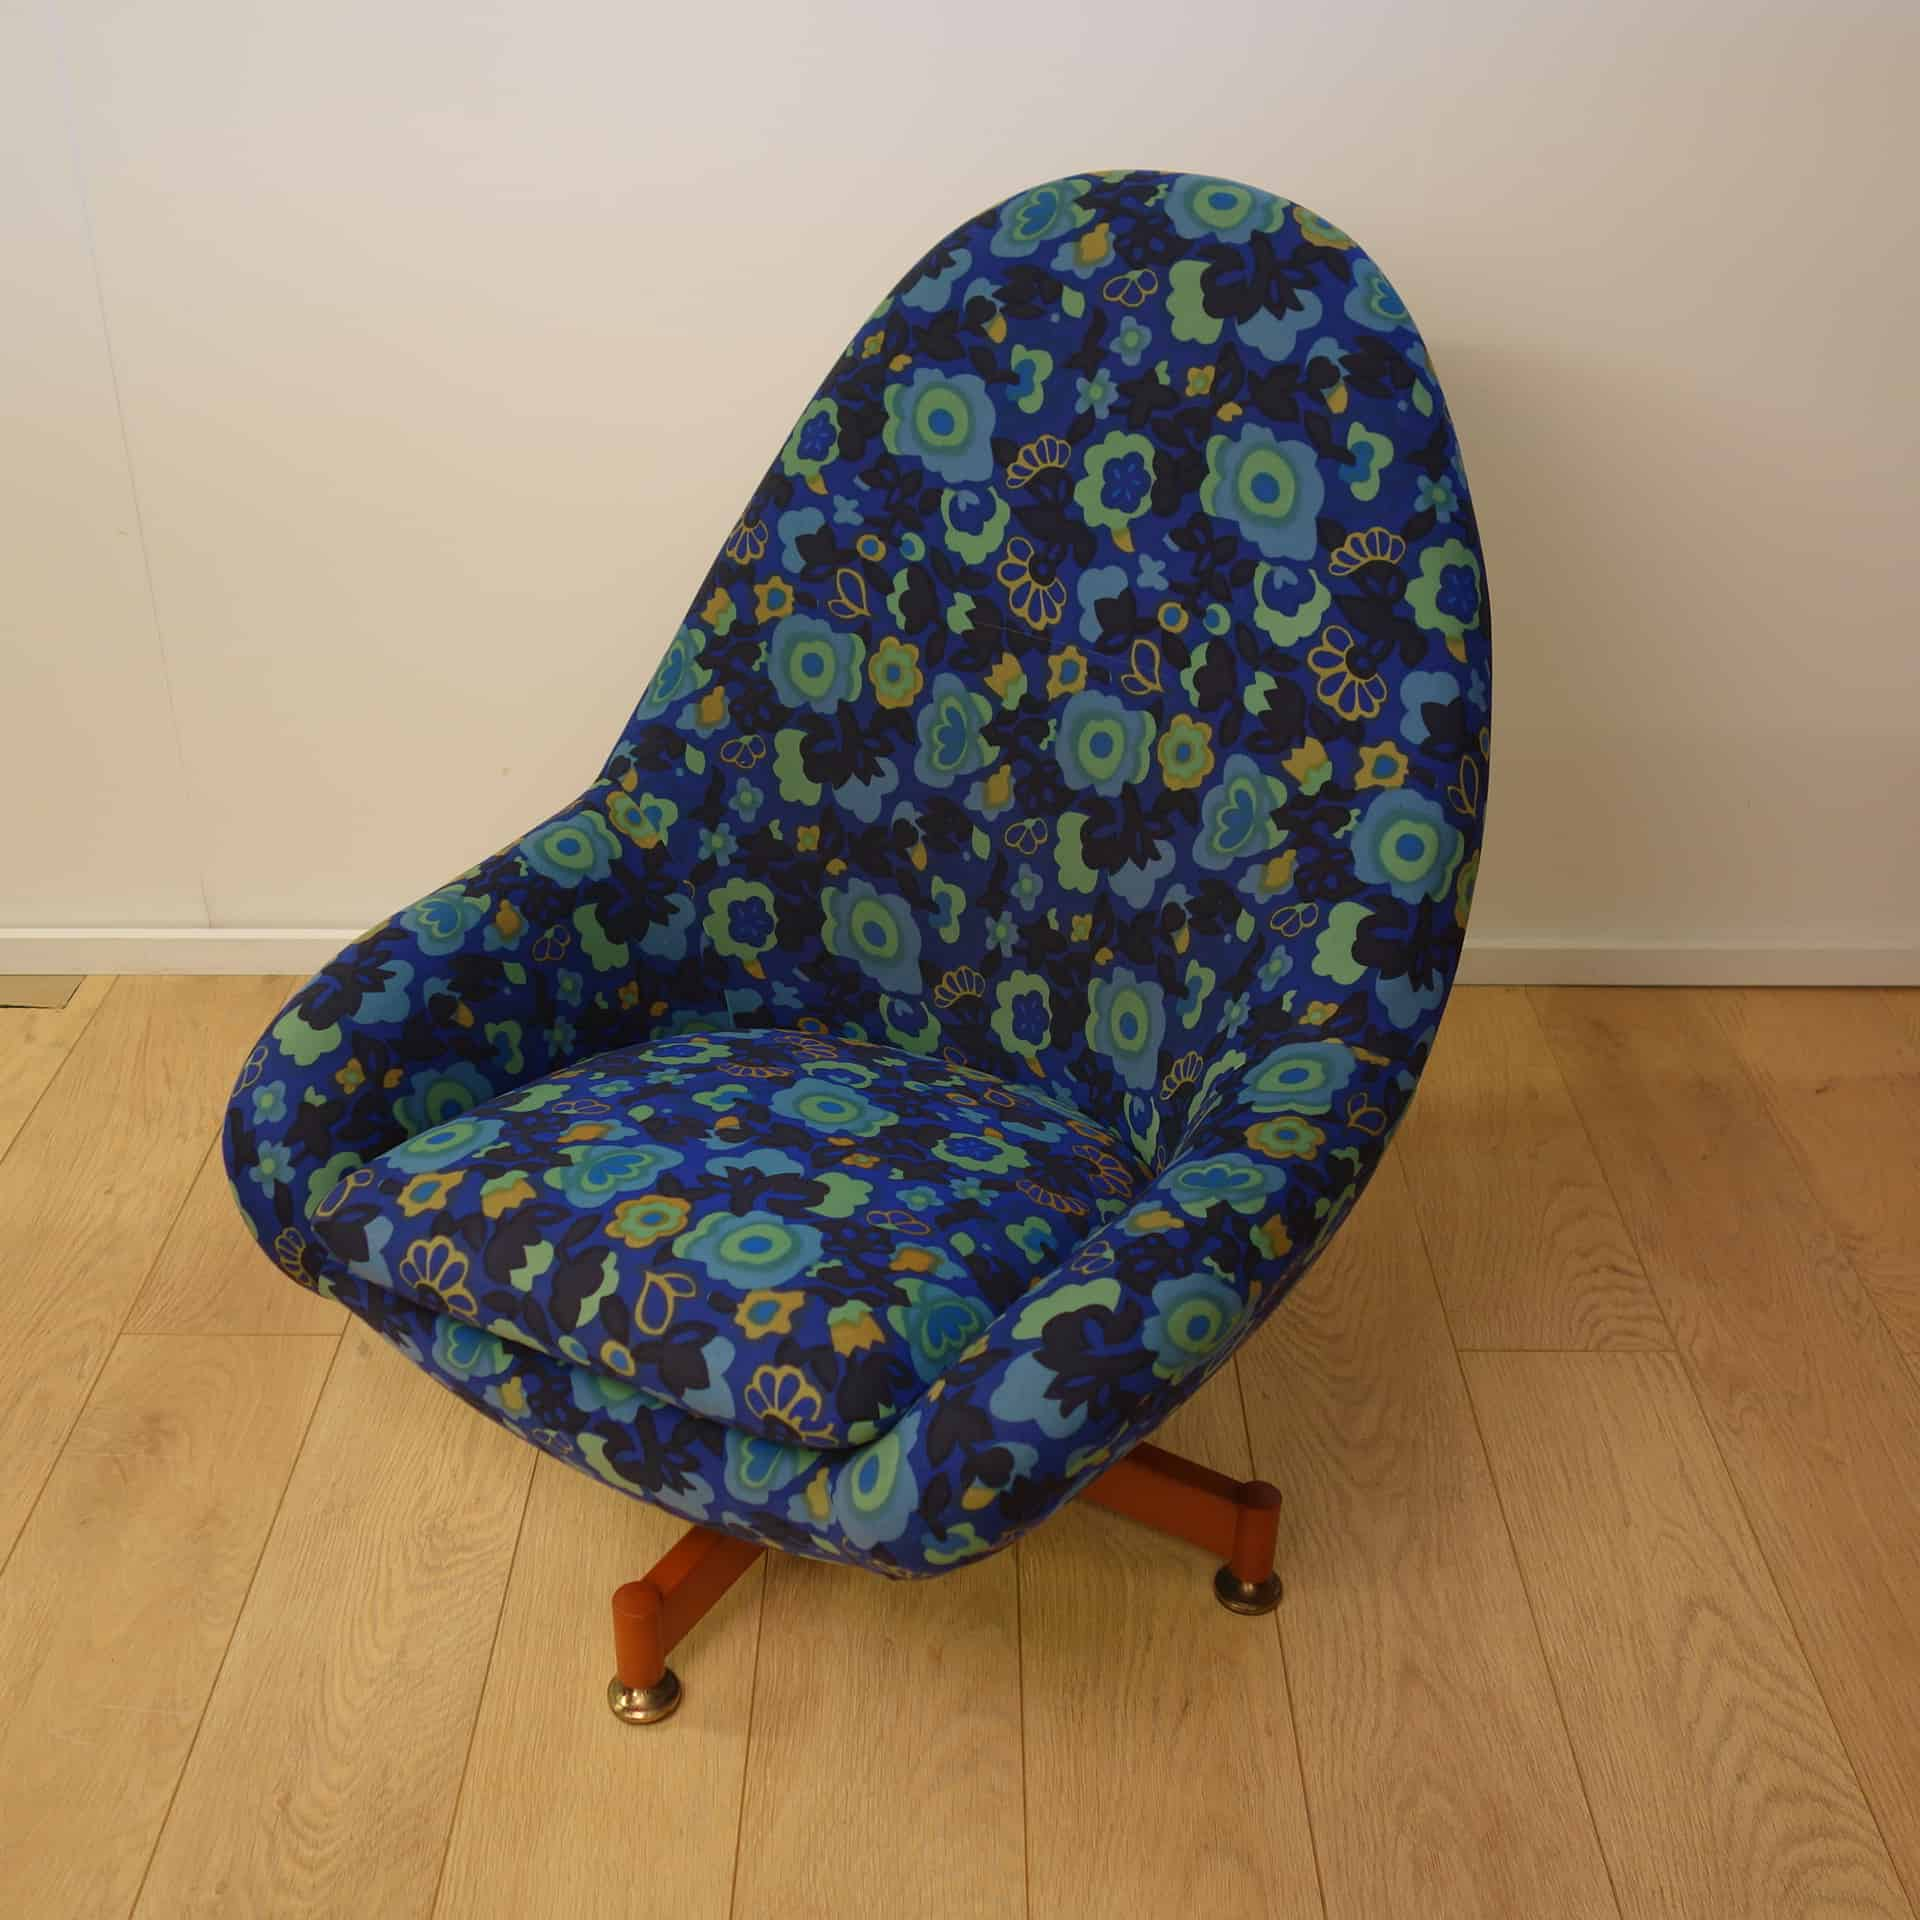 1960s Greaves and Thomas egg chair Mark Parrish Mid Century Modern